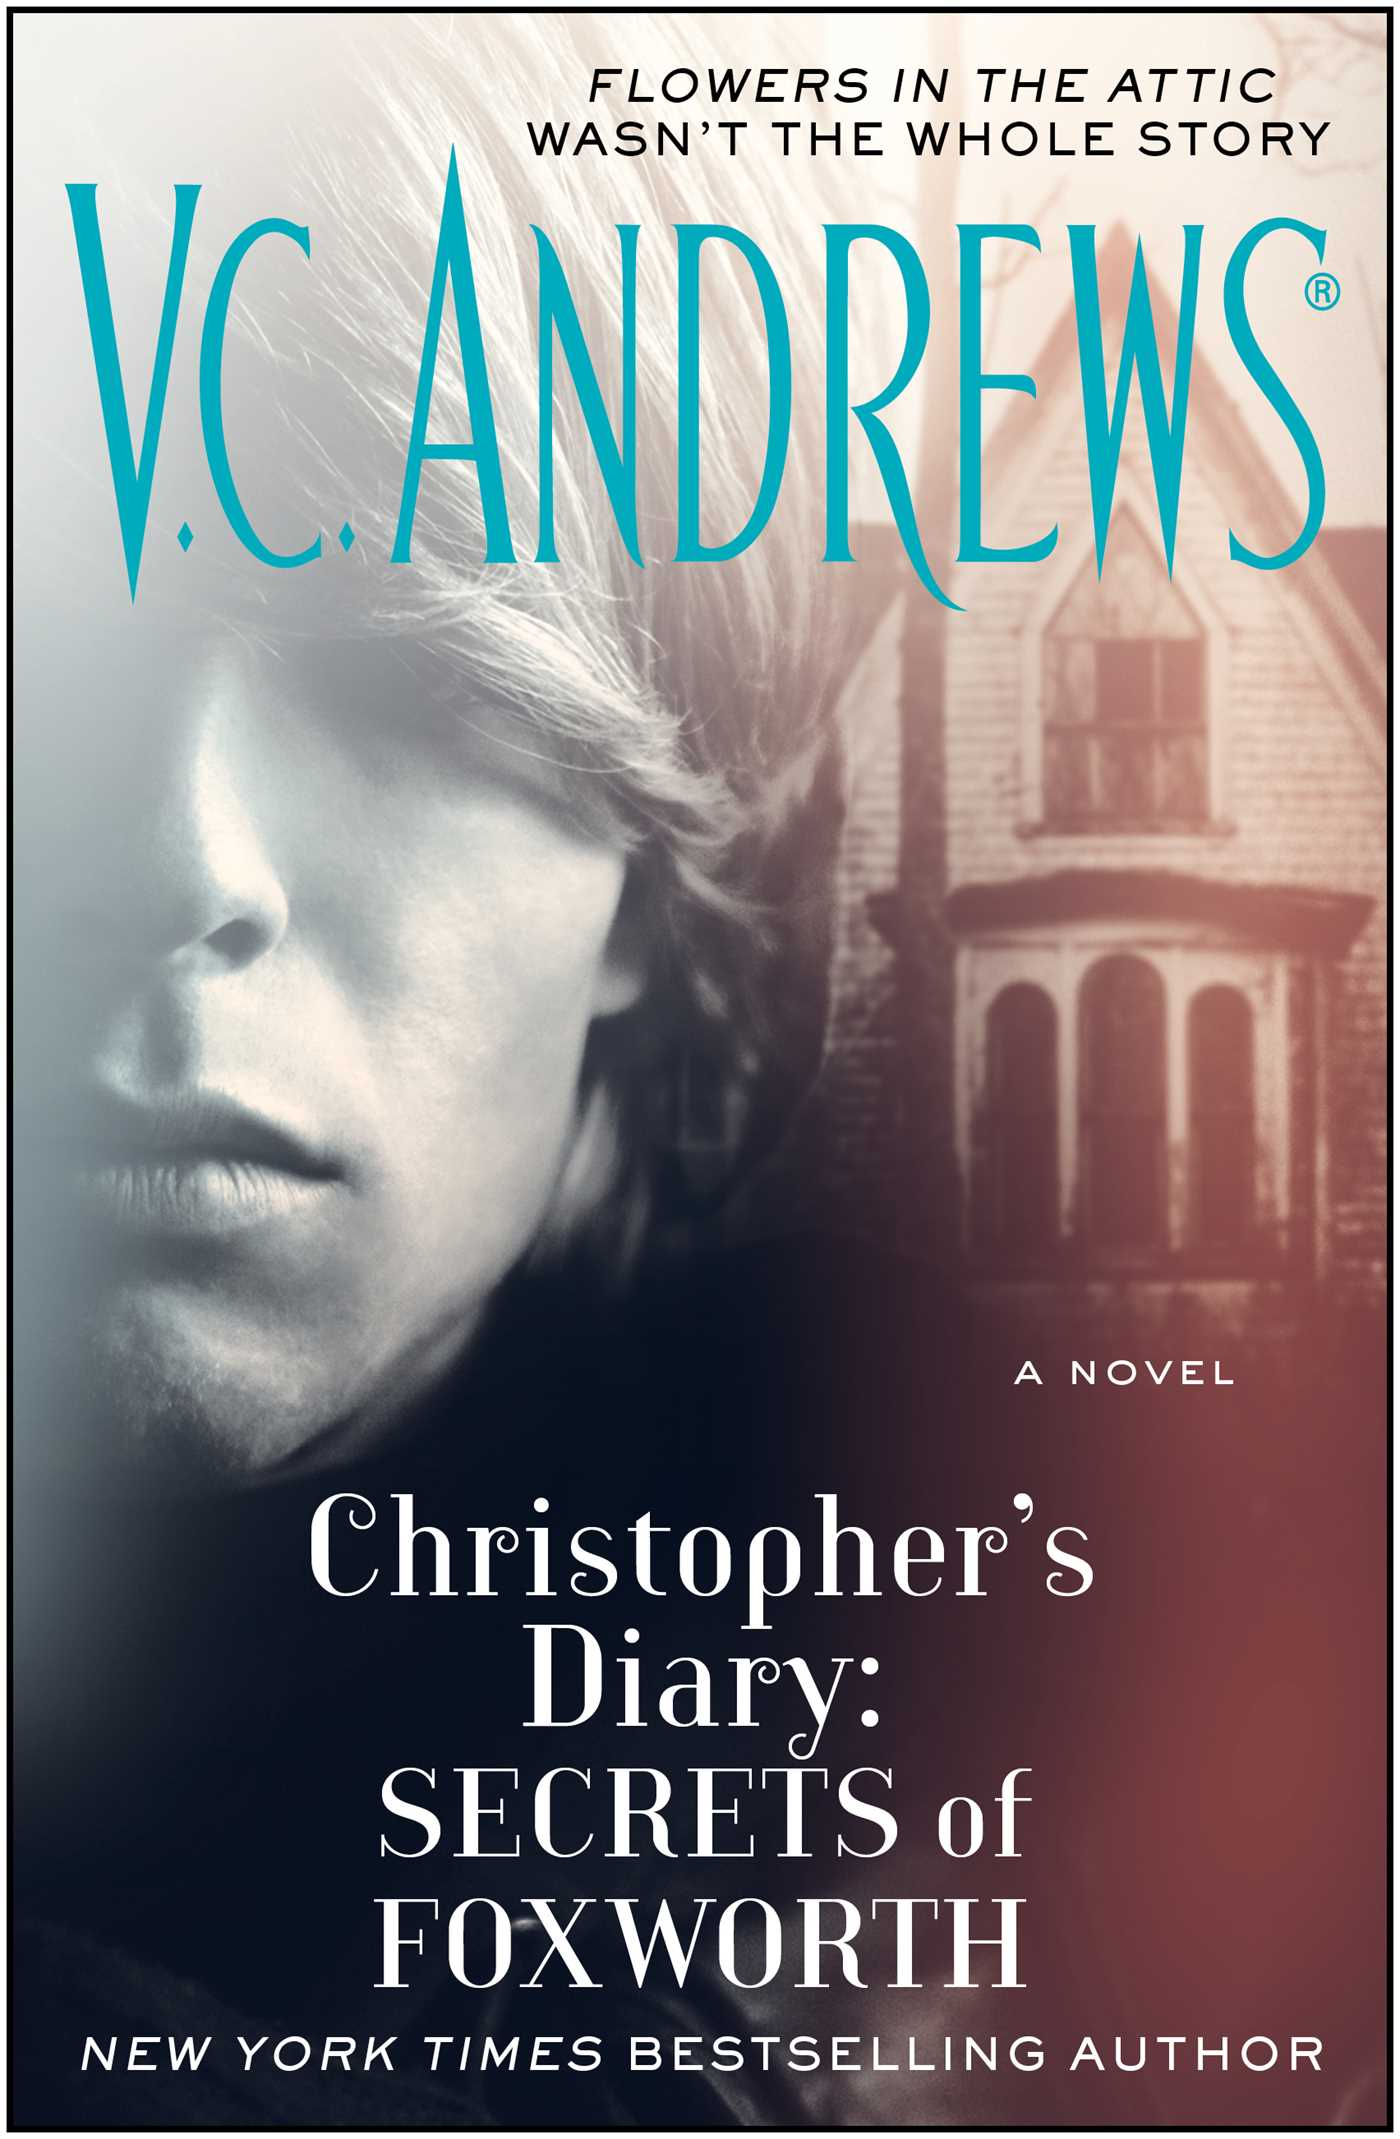 Christophers-diary-secrets-of-foxworth-9781476790602_hr